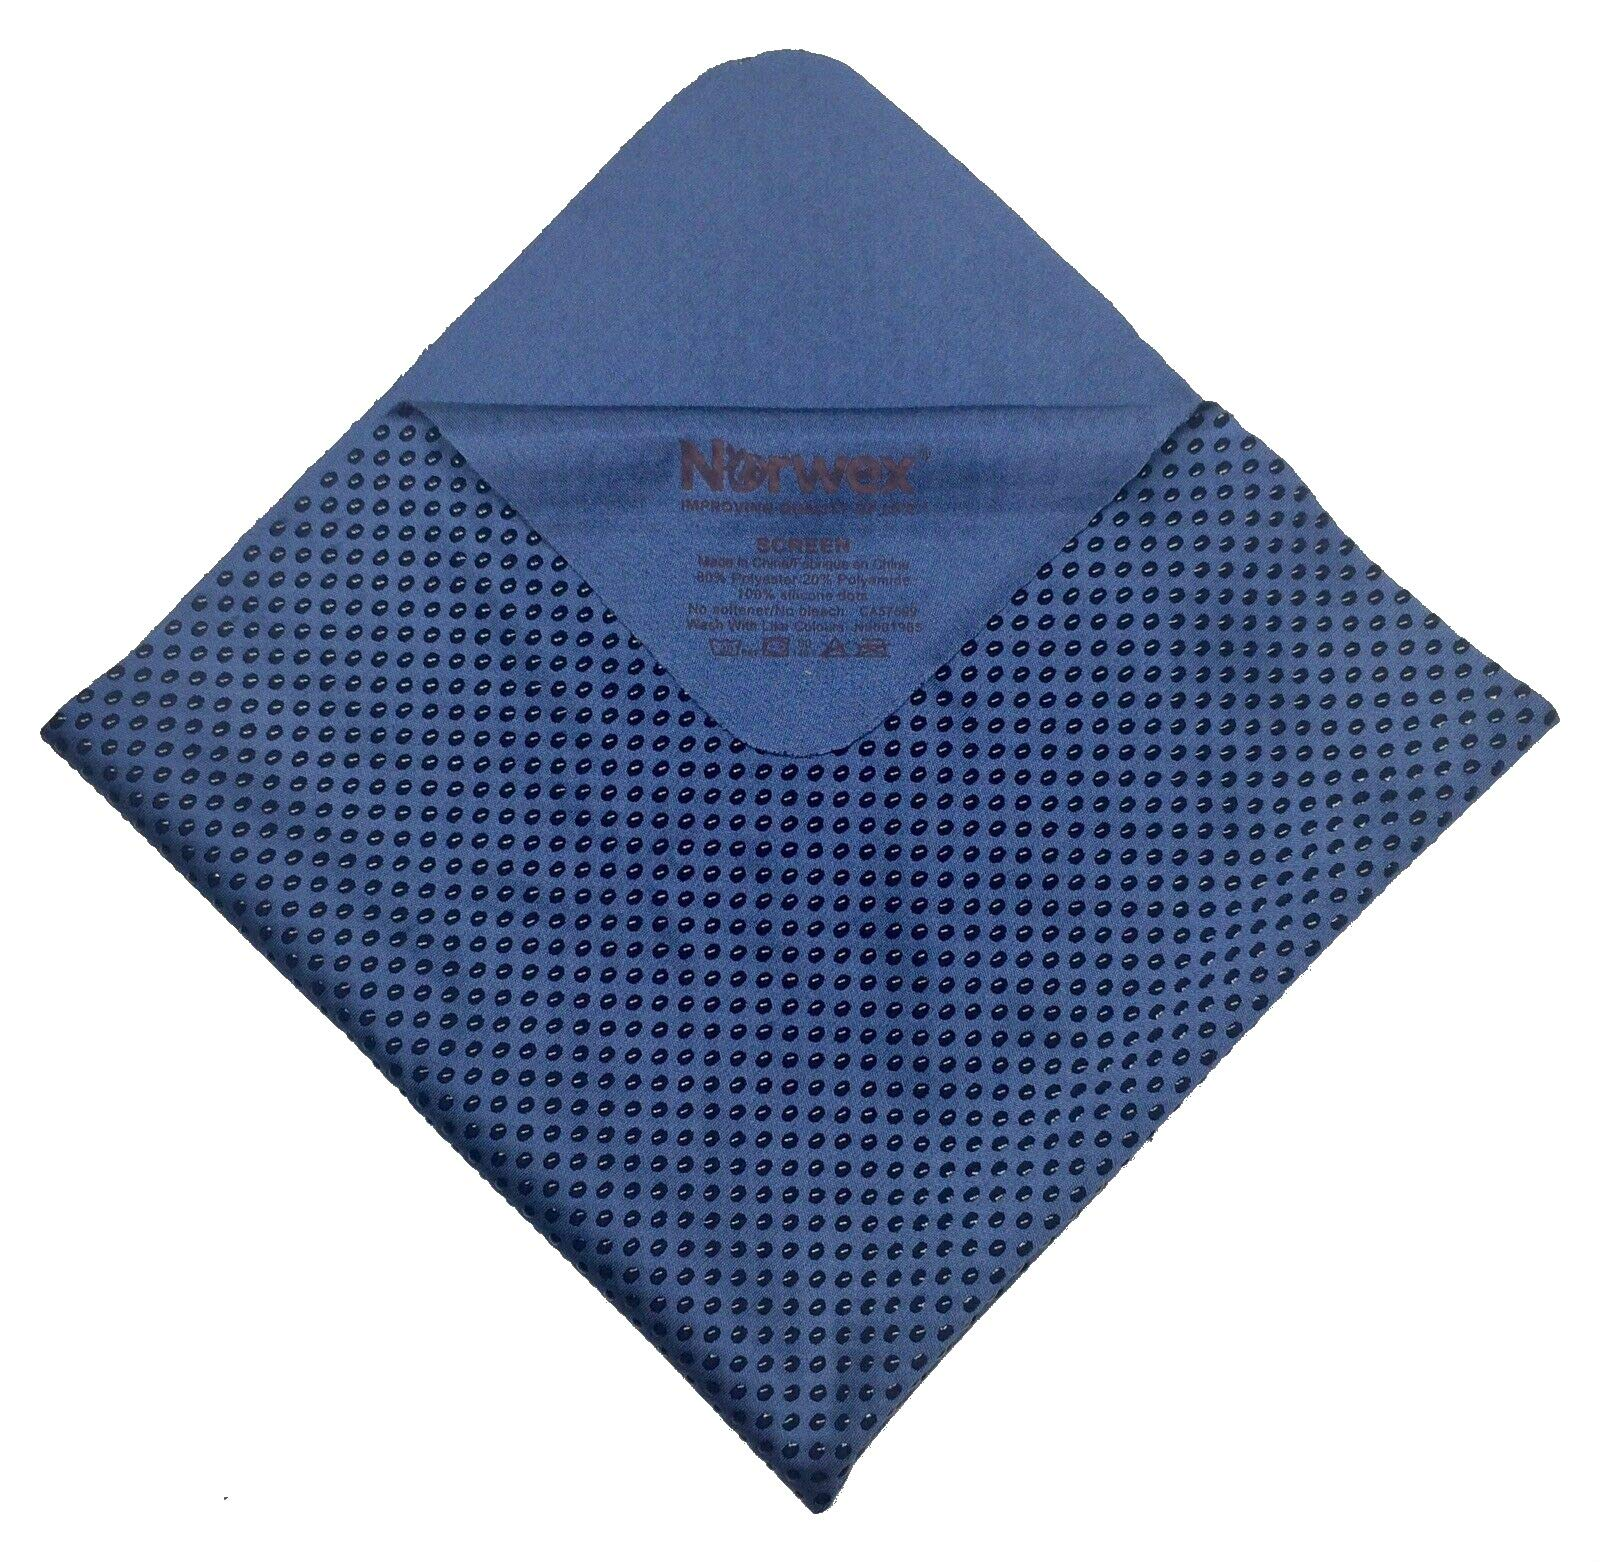 Norwex Tech Cleaning Cloth & Case by Norwex USA